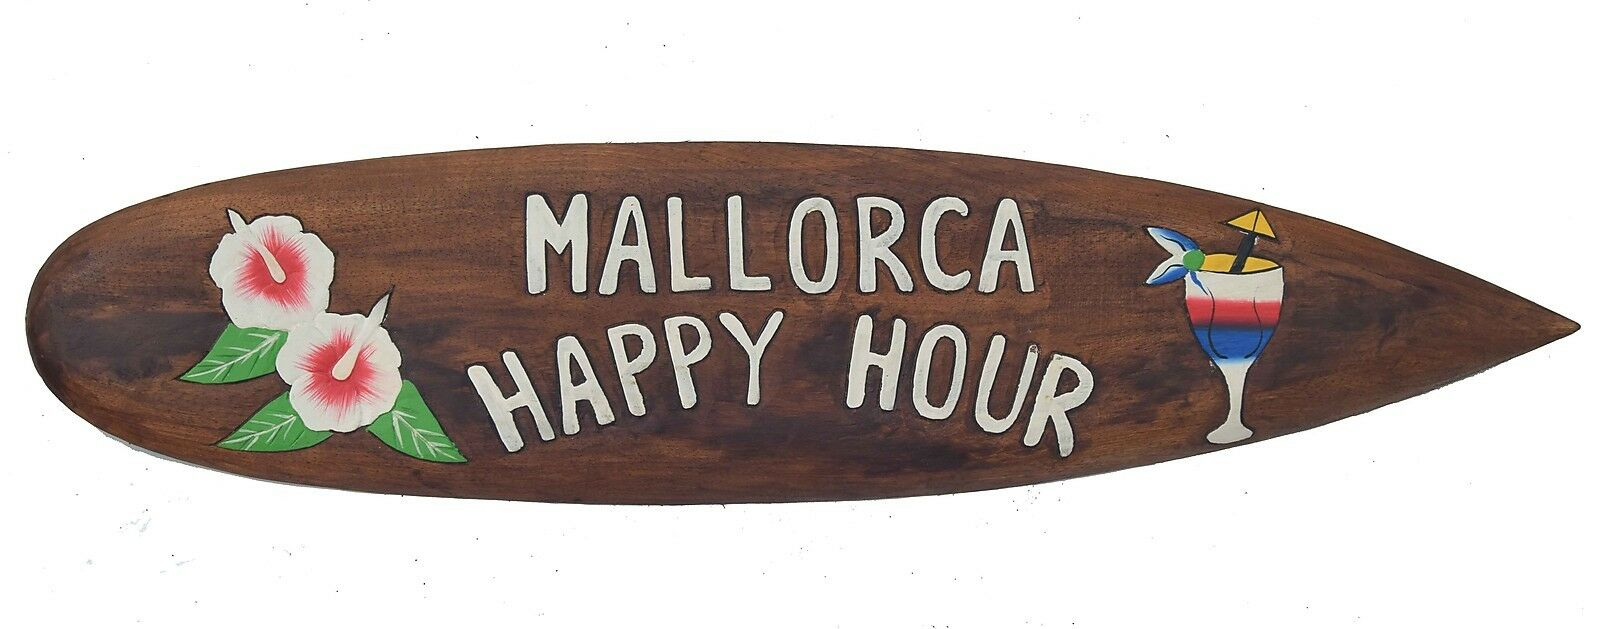 Decor Surfboard Mallorca Happy Hour in 100cm Surf Board in Wood